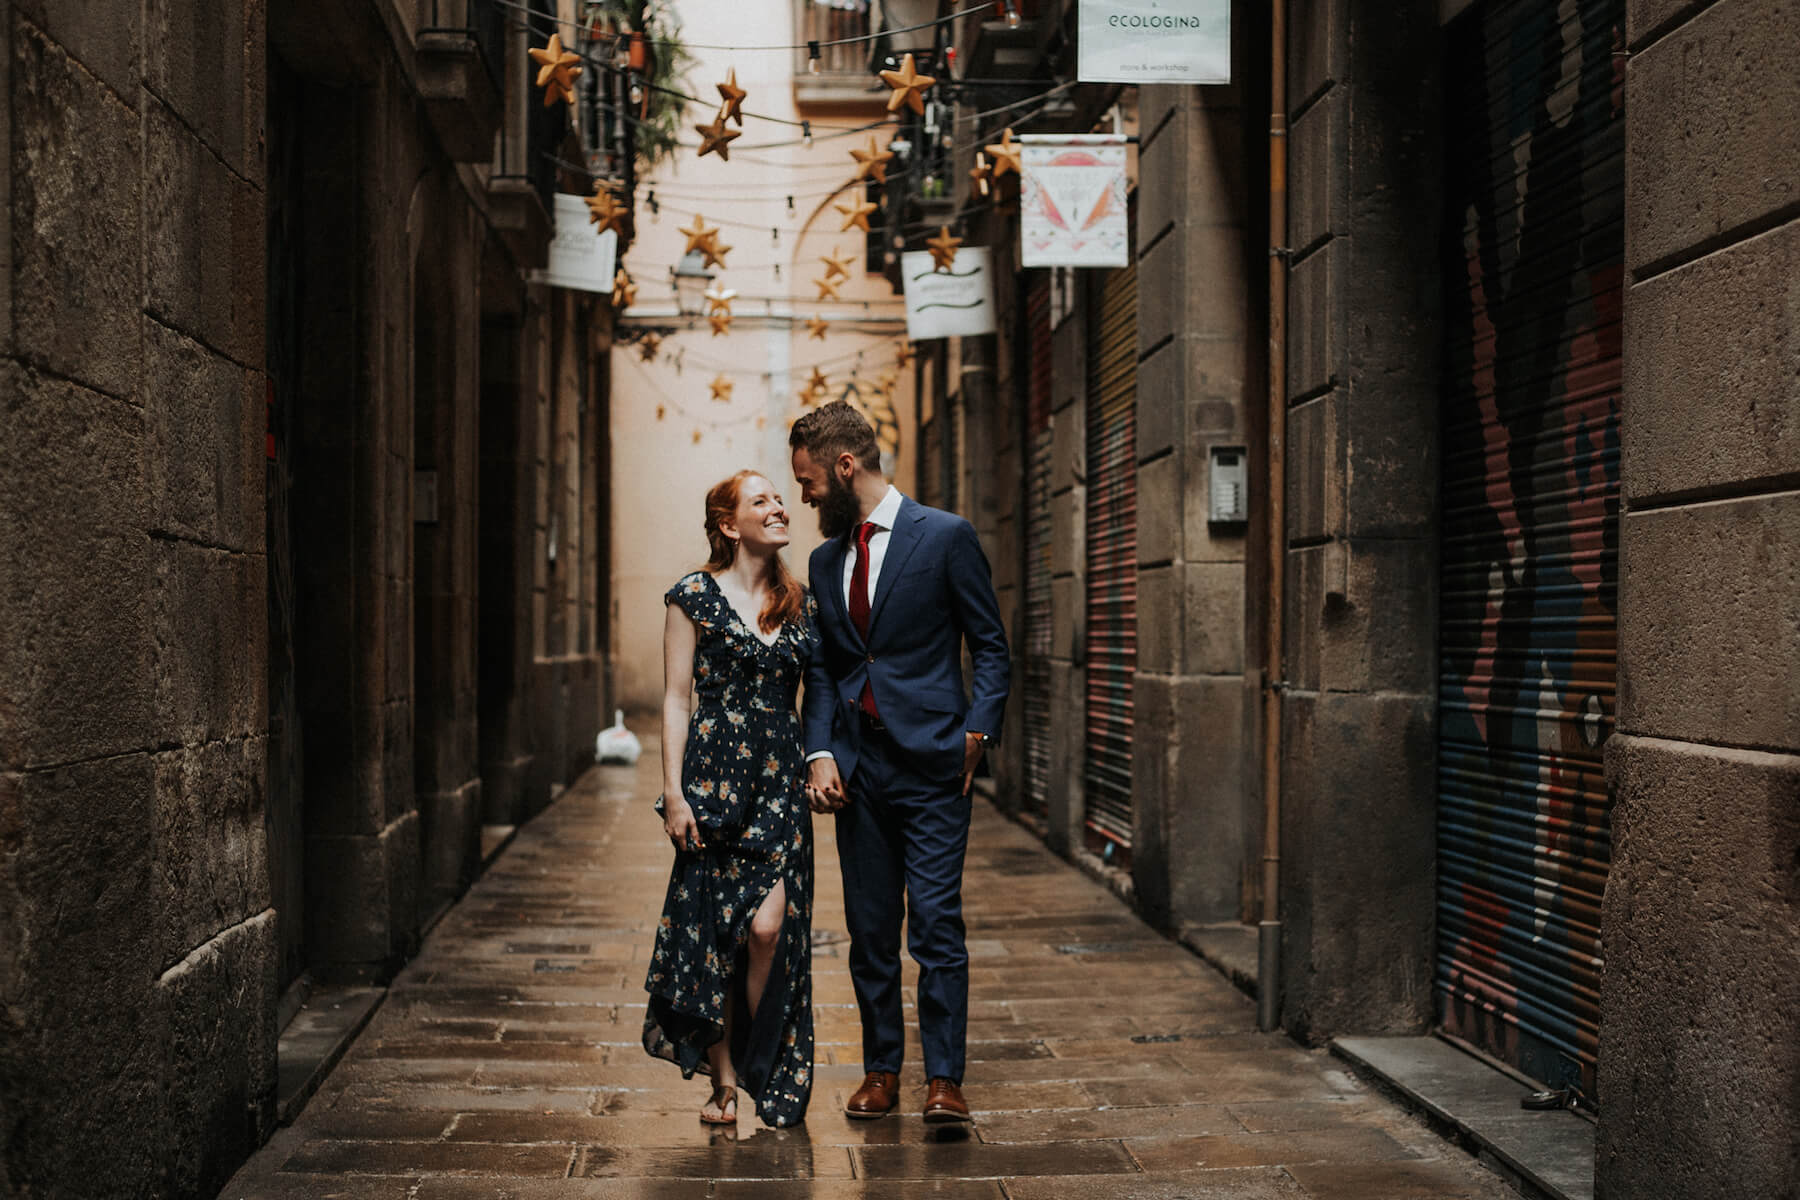 A well-dressed man and woman holding hands and smiling at each other while walking through the streets of Barcelona, Spain.